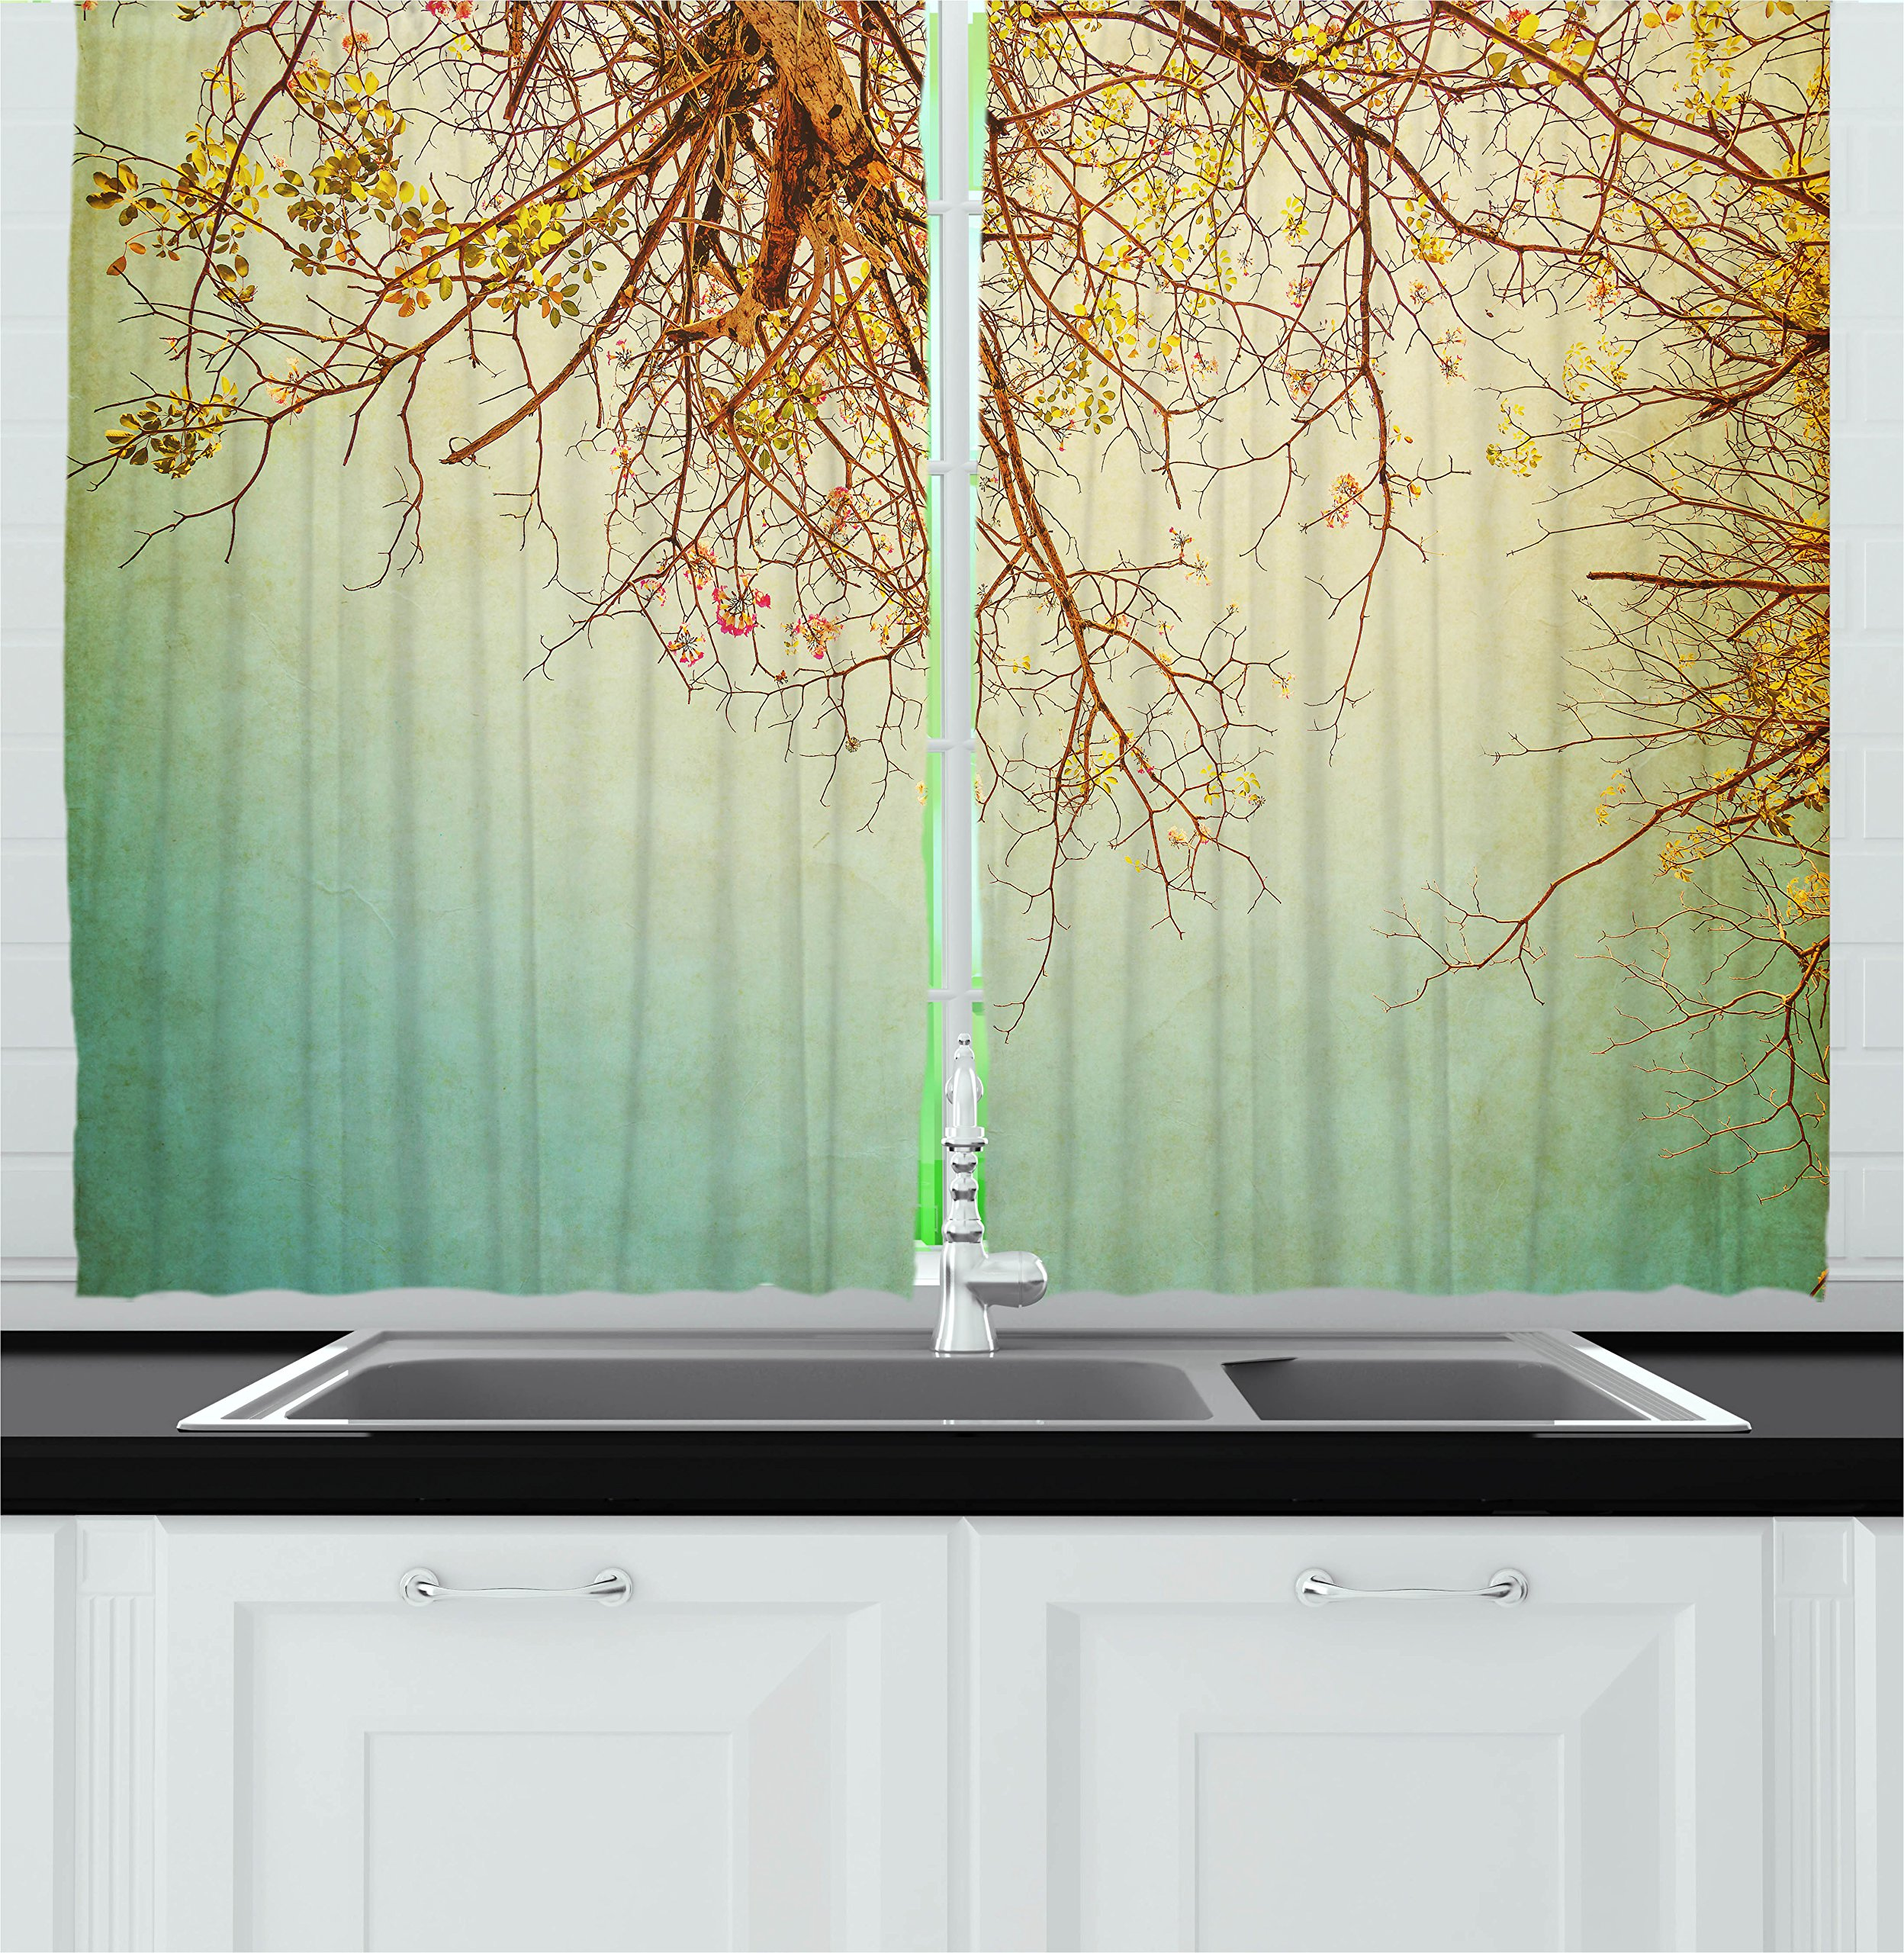 Ambesonne Nature Kitchen Curtains, Vintage Tree Flower Branches with Spring Blooms Fresh Leaves Print, Window Drapes 2 Panels Set for Kitchen Cafe, 55W X 39L inches, Ginger Mint and Light Green by Ambesonne